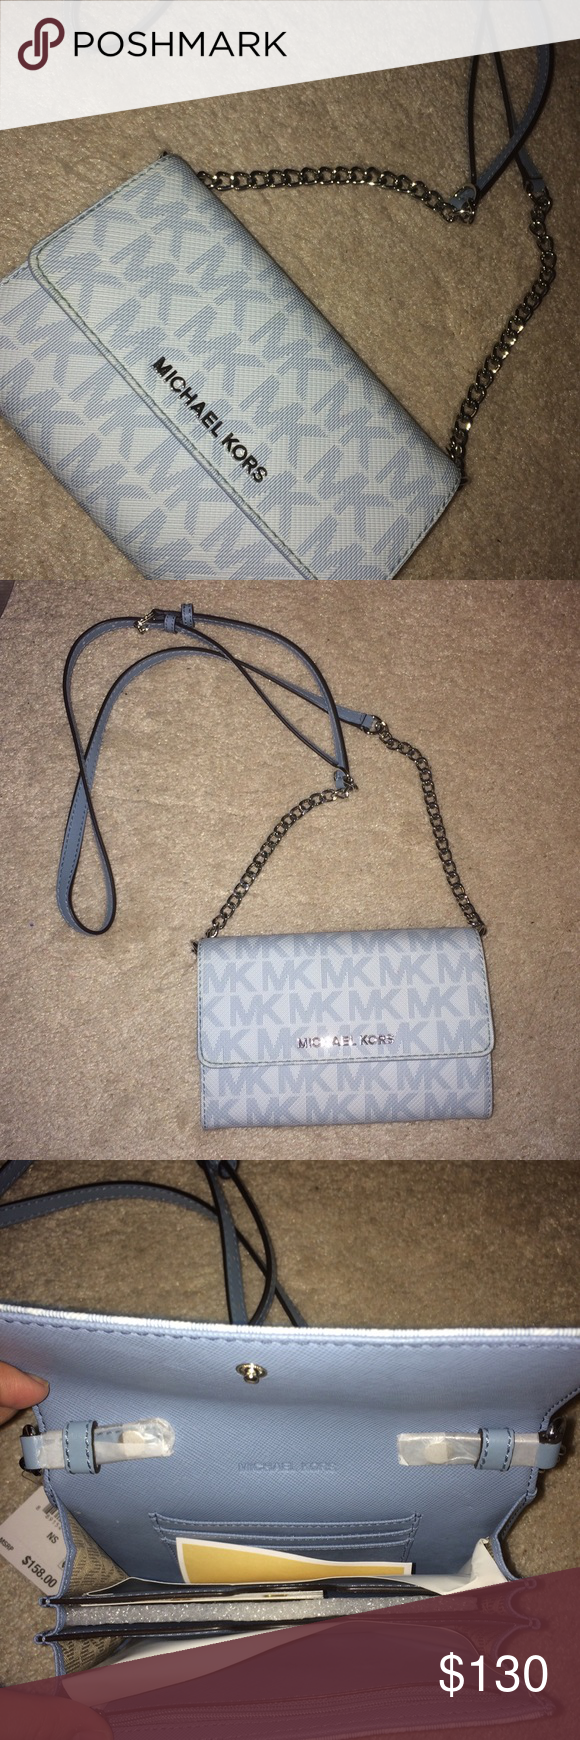 NWT Michael Kors Crossbody Purse Brand new • Never used • Been sitting in my closet • Super cute • Silver and light blue colored Michael Kors Bags Crossbody Bags